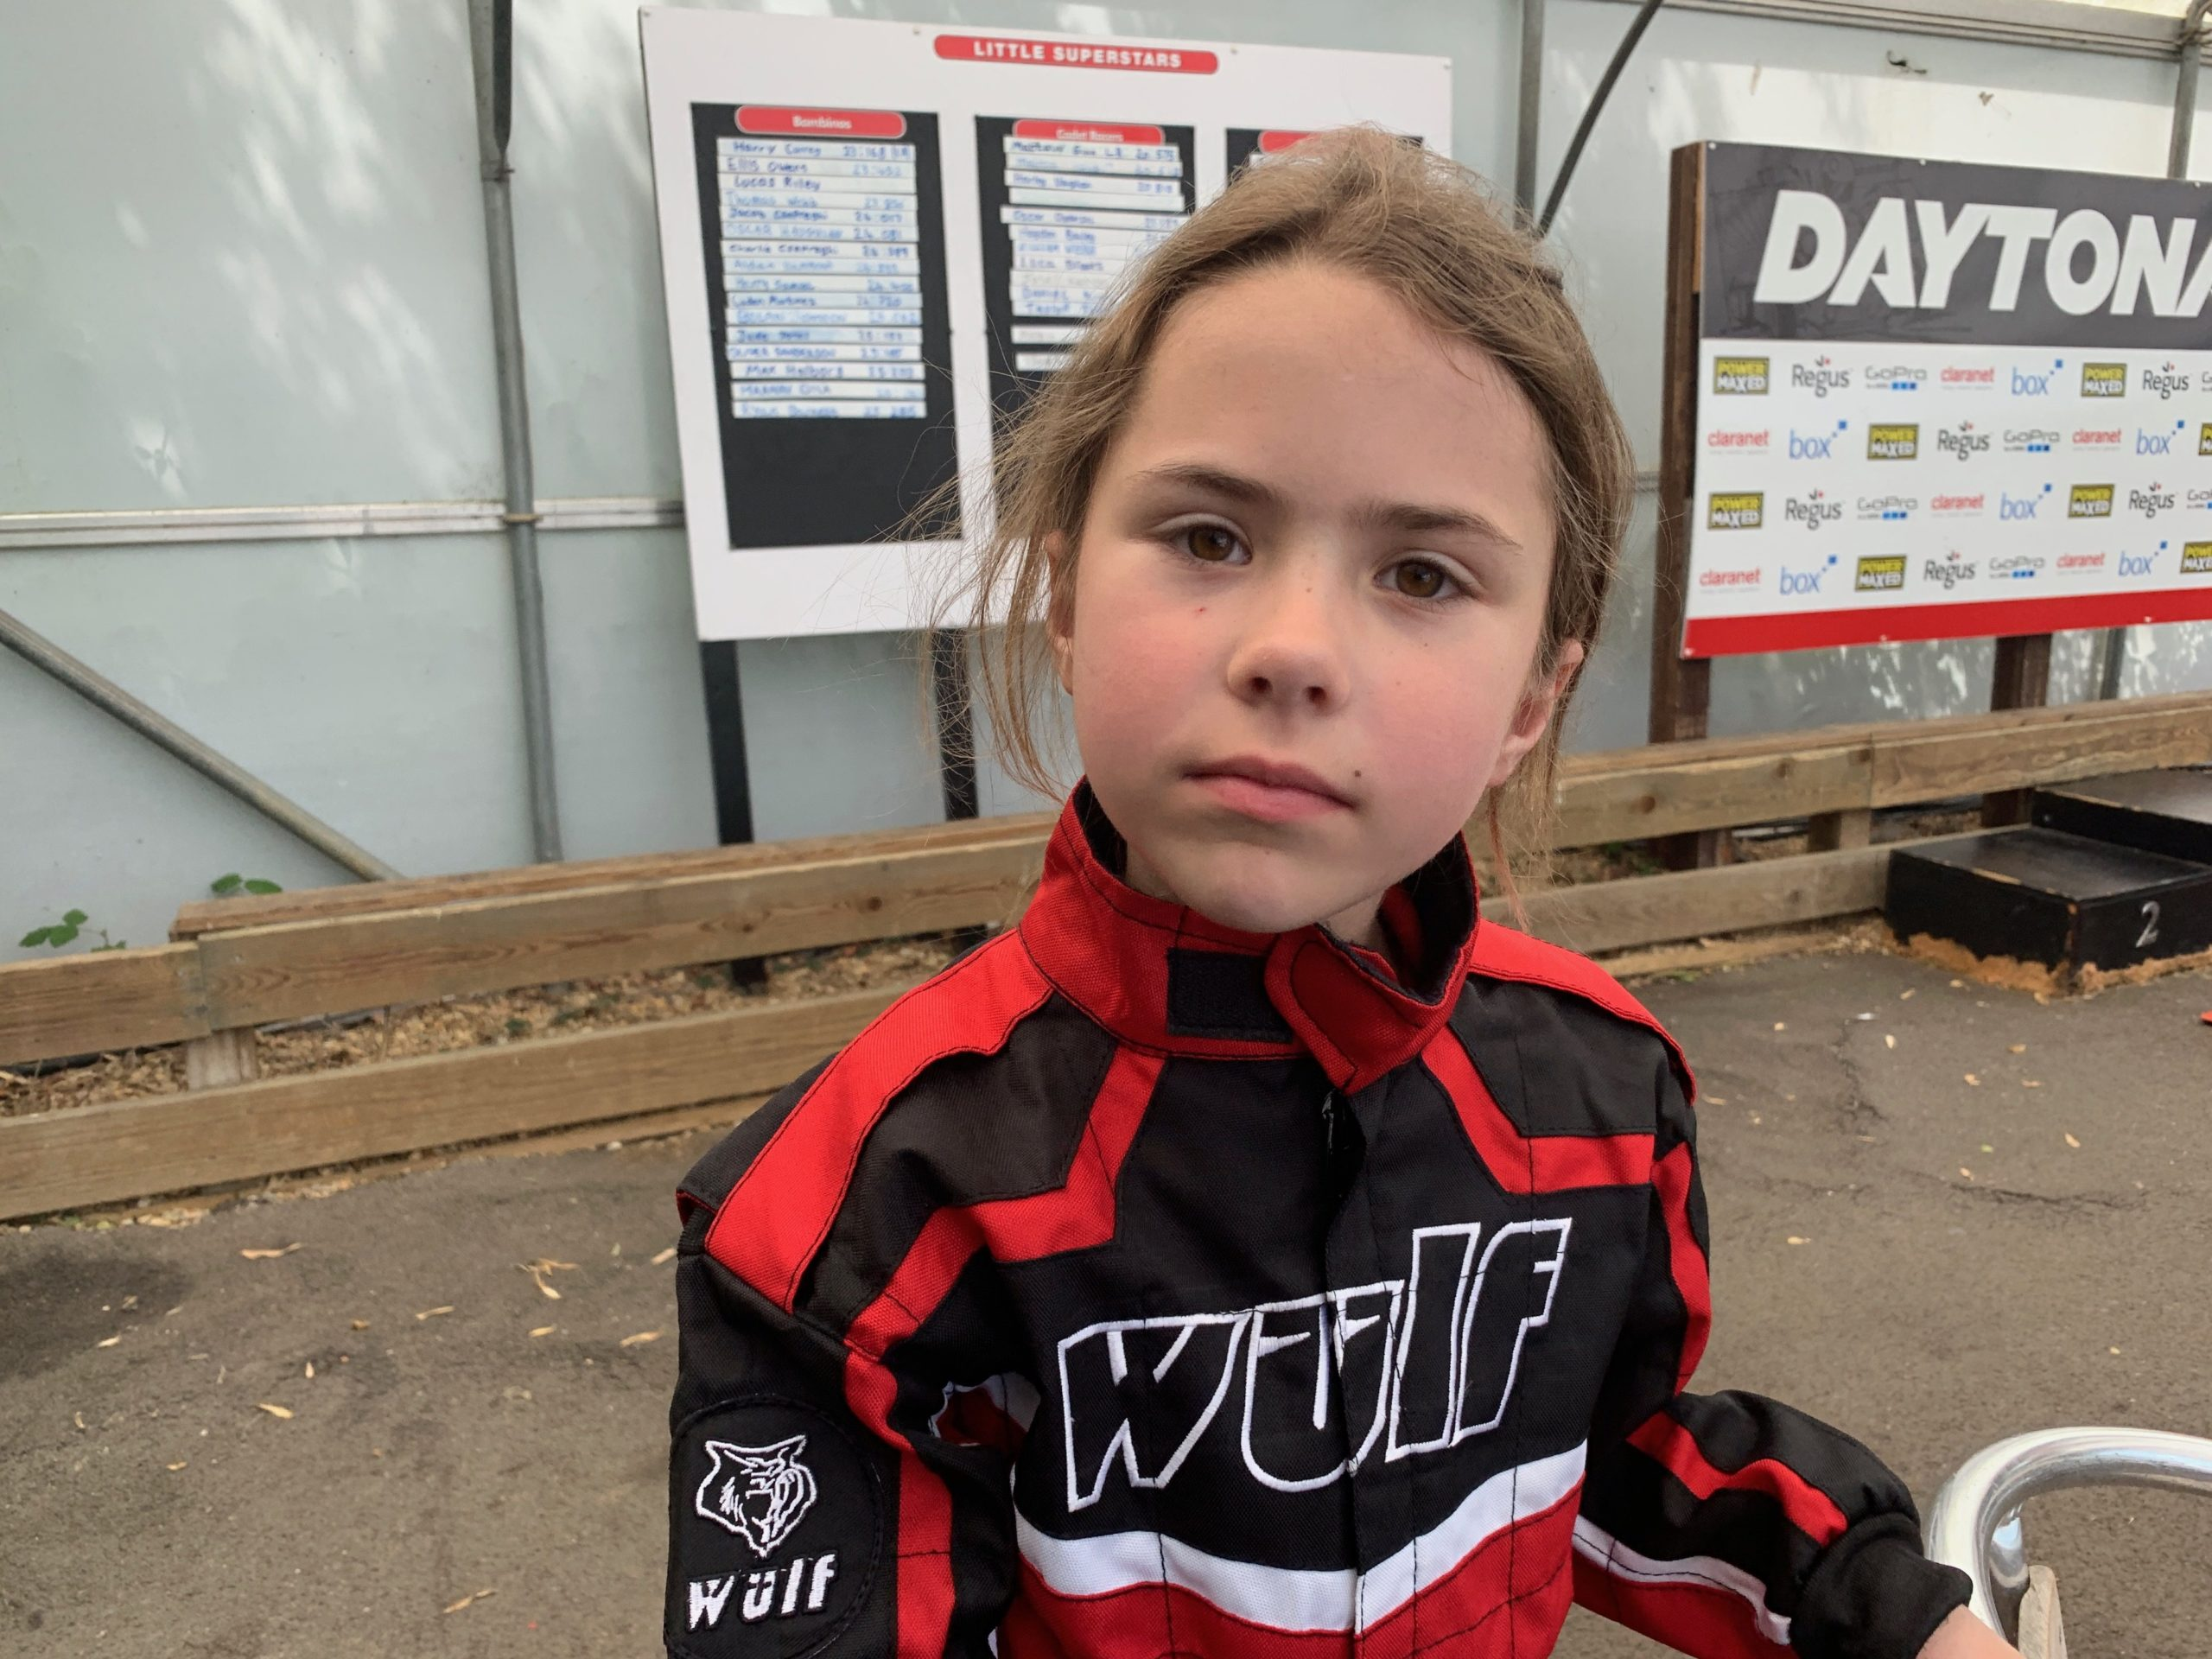 Evie Segebrecht in racing jumpsuit at Daytona